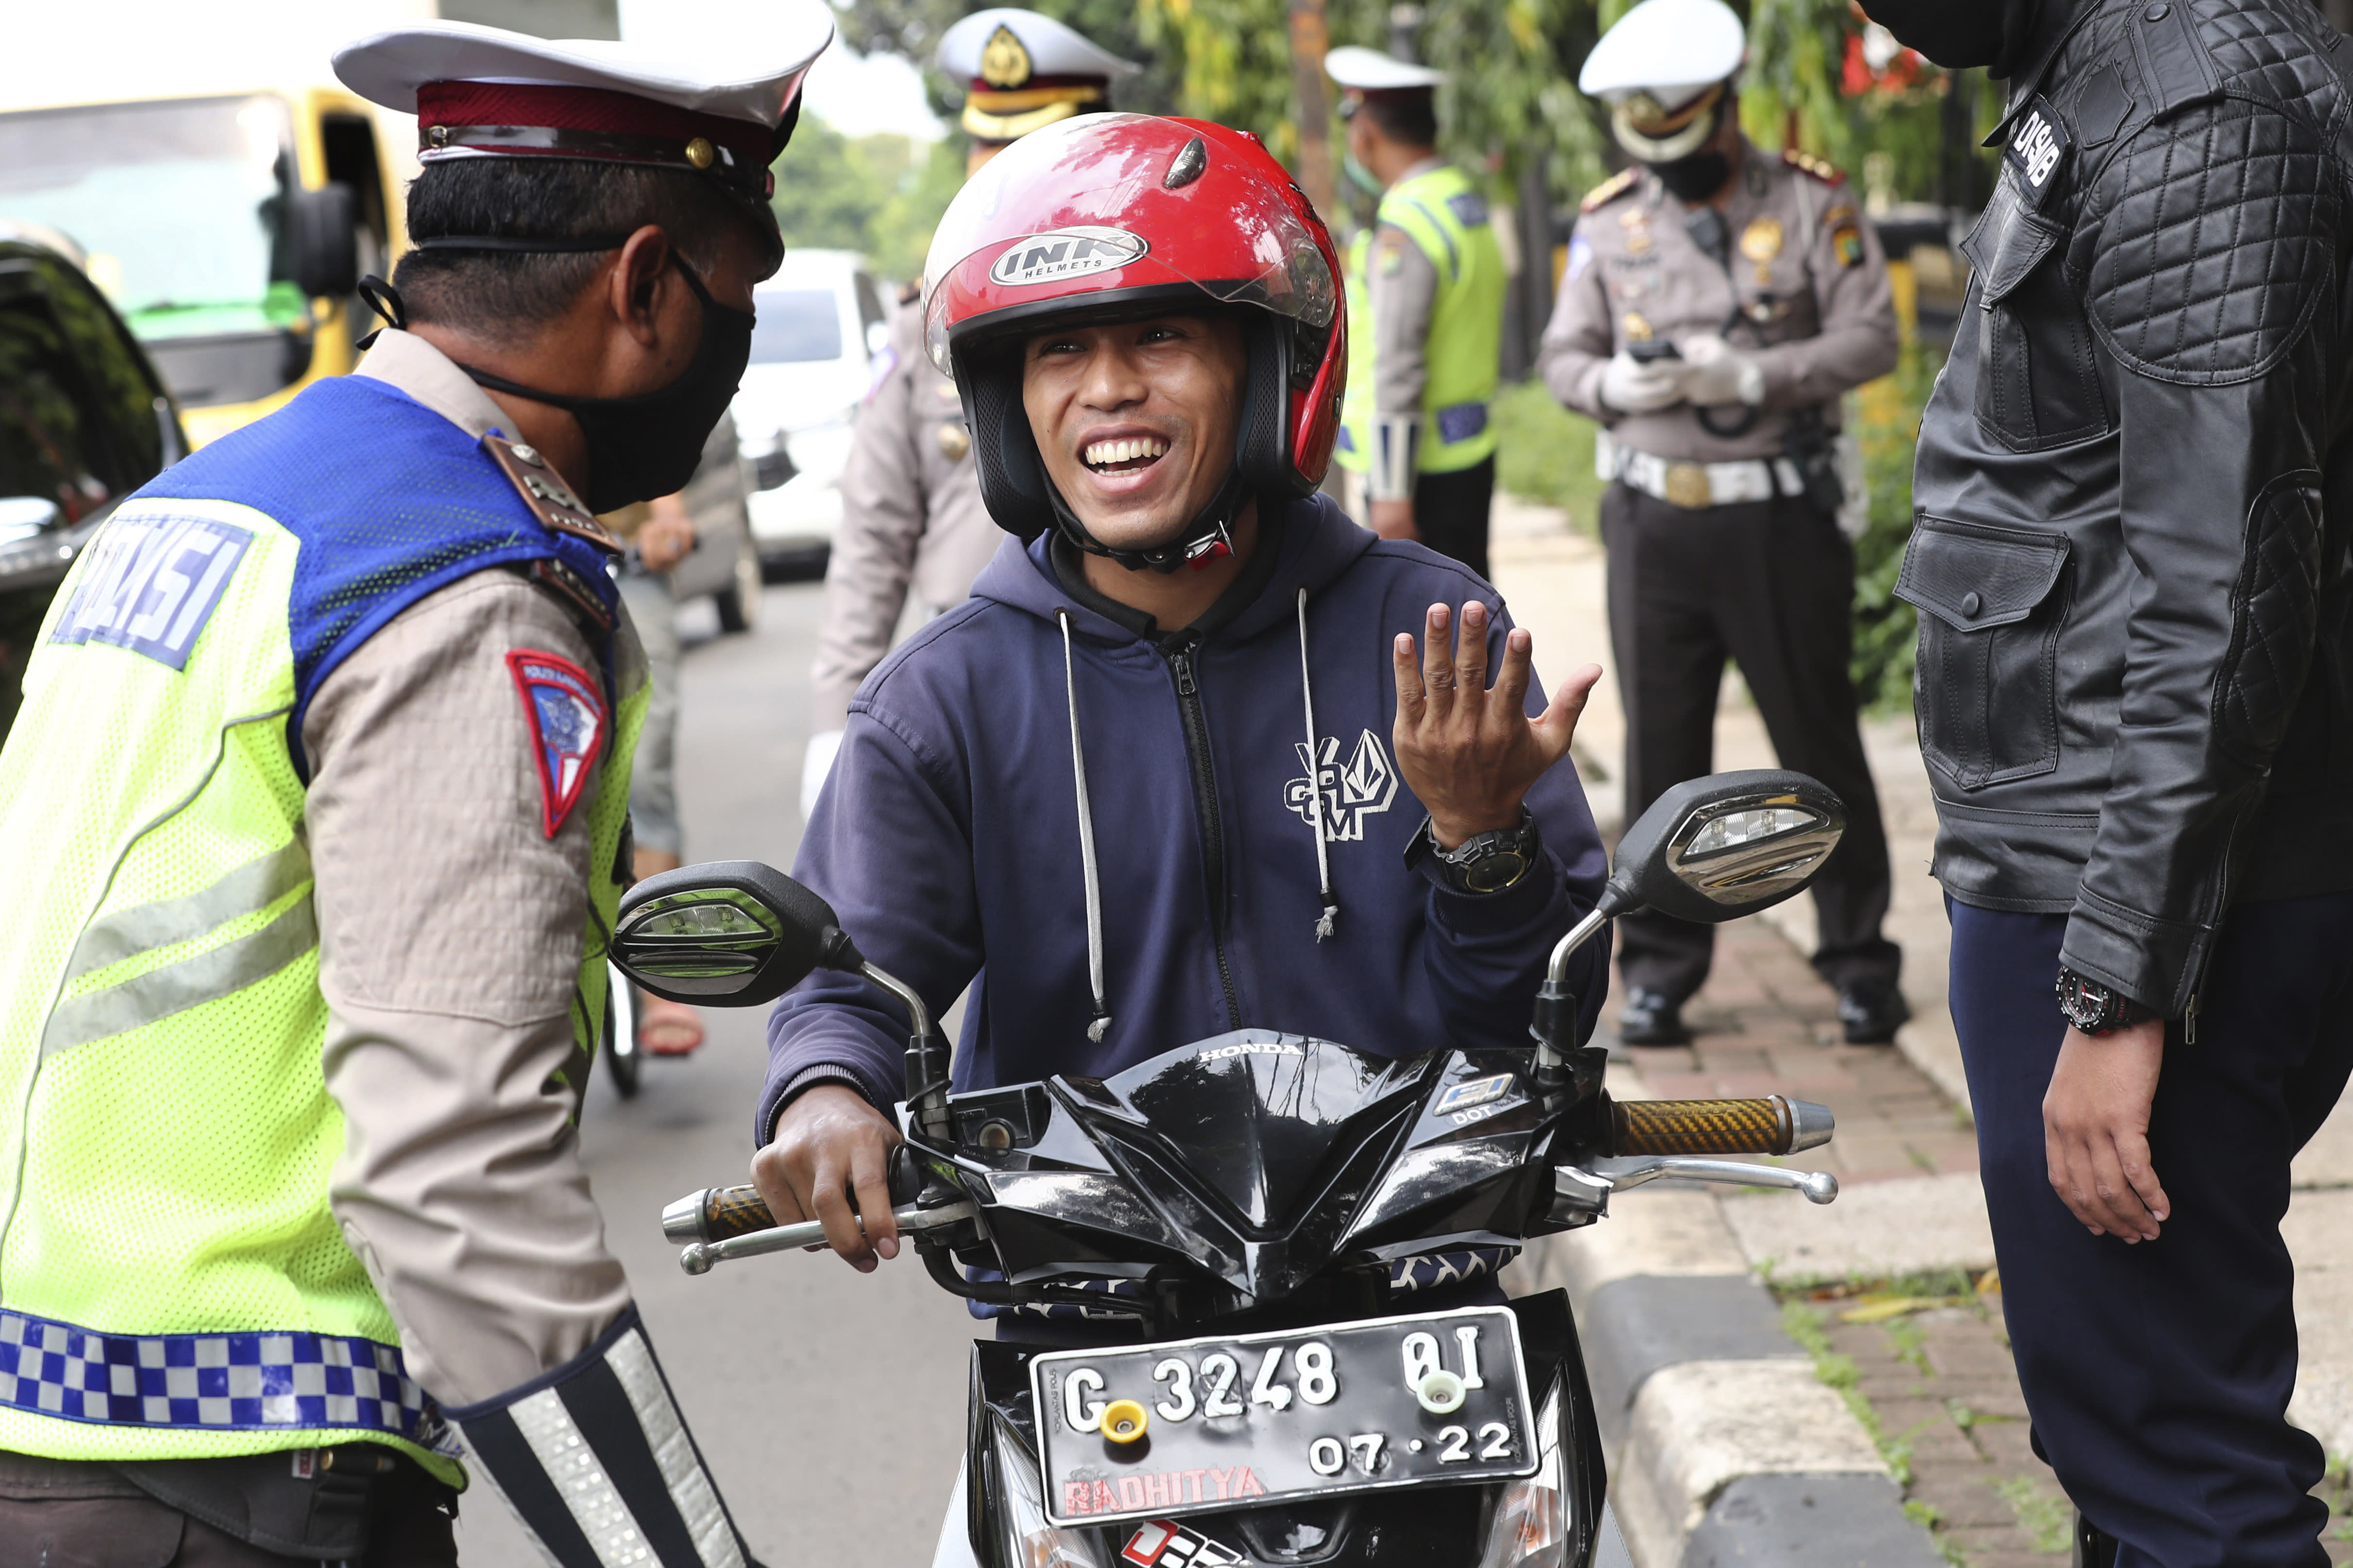 Police officers question a man who is not wearing a face mask during the imposition of large-scale social restriction, at a checkpoint in Jakarta, Indonesia, Friday, April 10, 2020. Authorities in Indonesia's capital kicked off a stricter restriction on Friday to slow the spread of the new coronavirus in the city where deaths from the virus has spiked in the past week. (AP Photo/Tatan Syuflana)